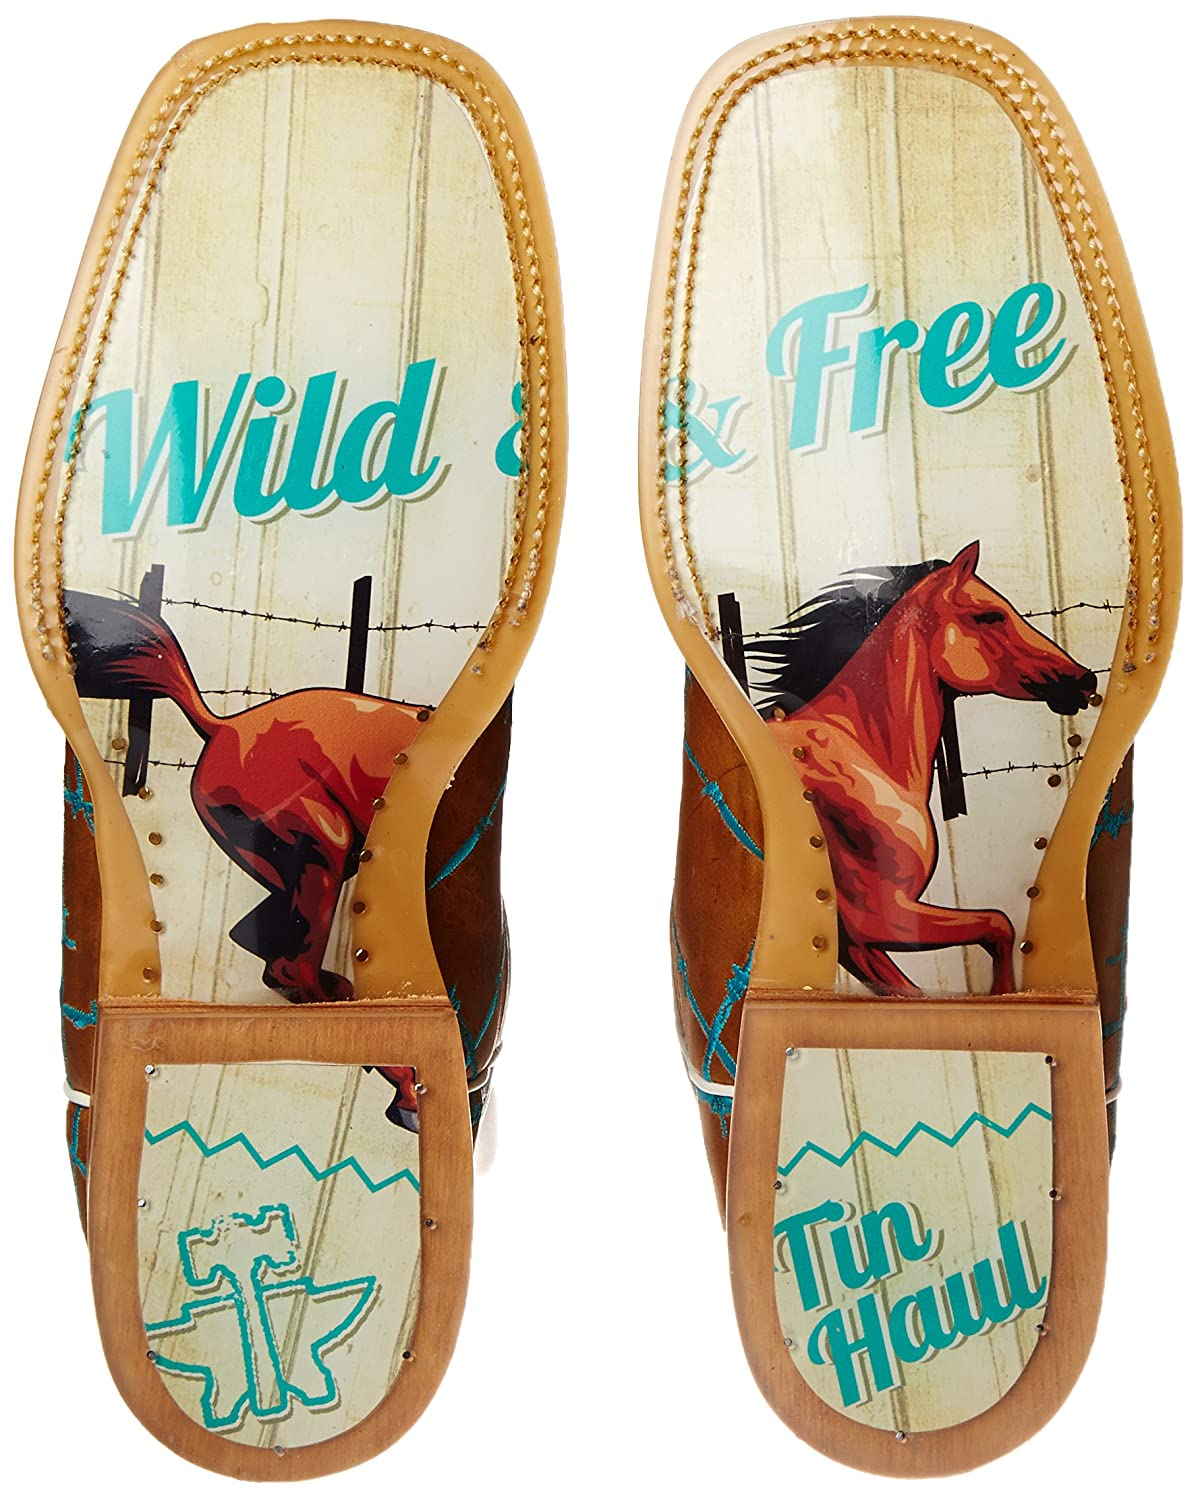 Tin Haul Shoes Boot Women's Barb'd Wire Western Boot Shoes B00WHUMHXY 8.5 B(M) US Tan & Turquoise 88ef90